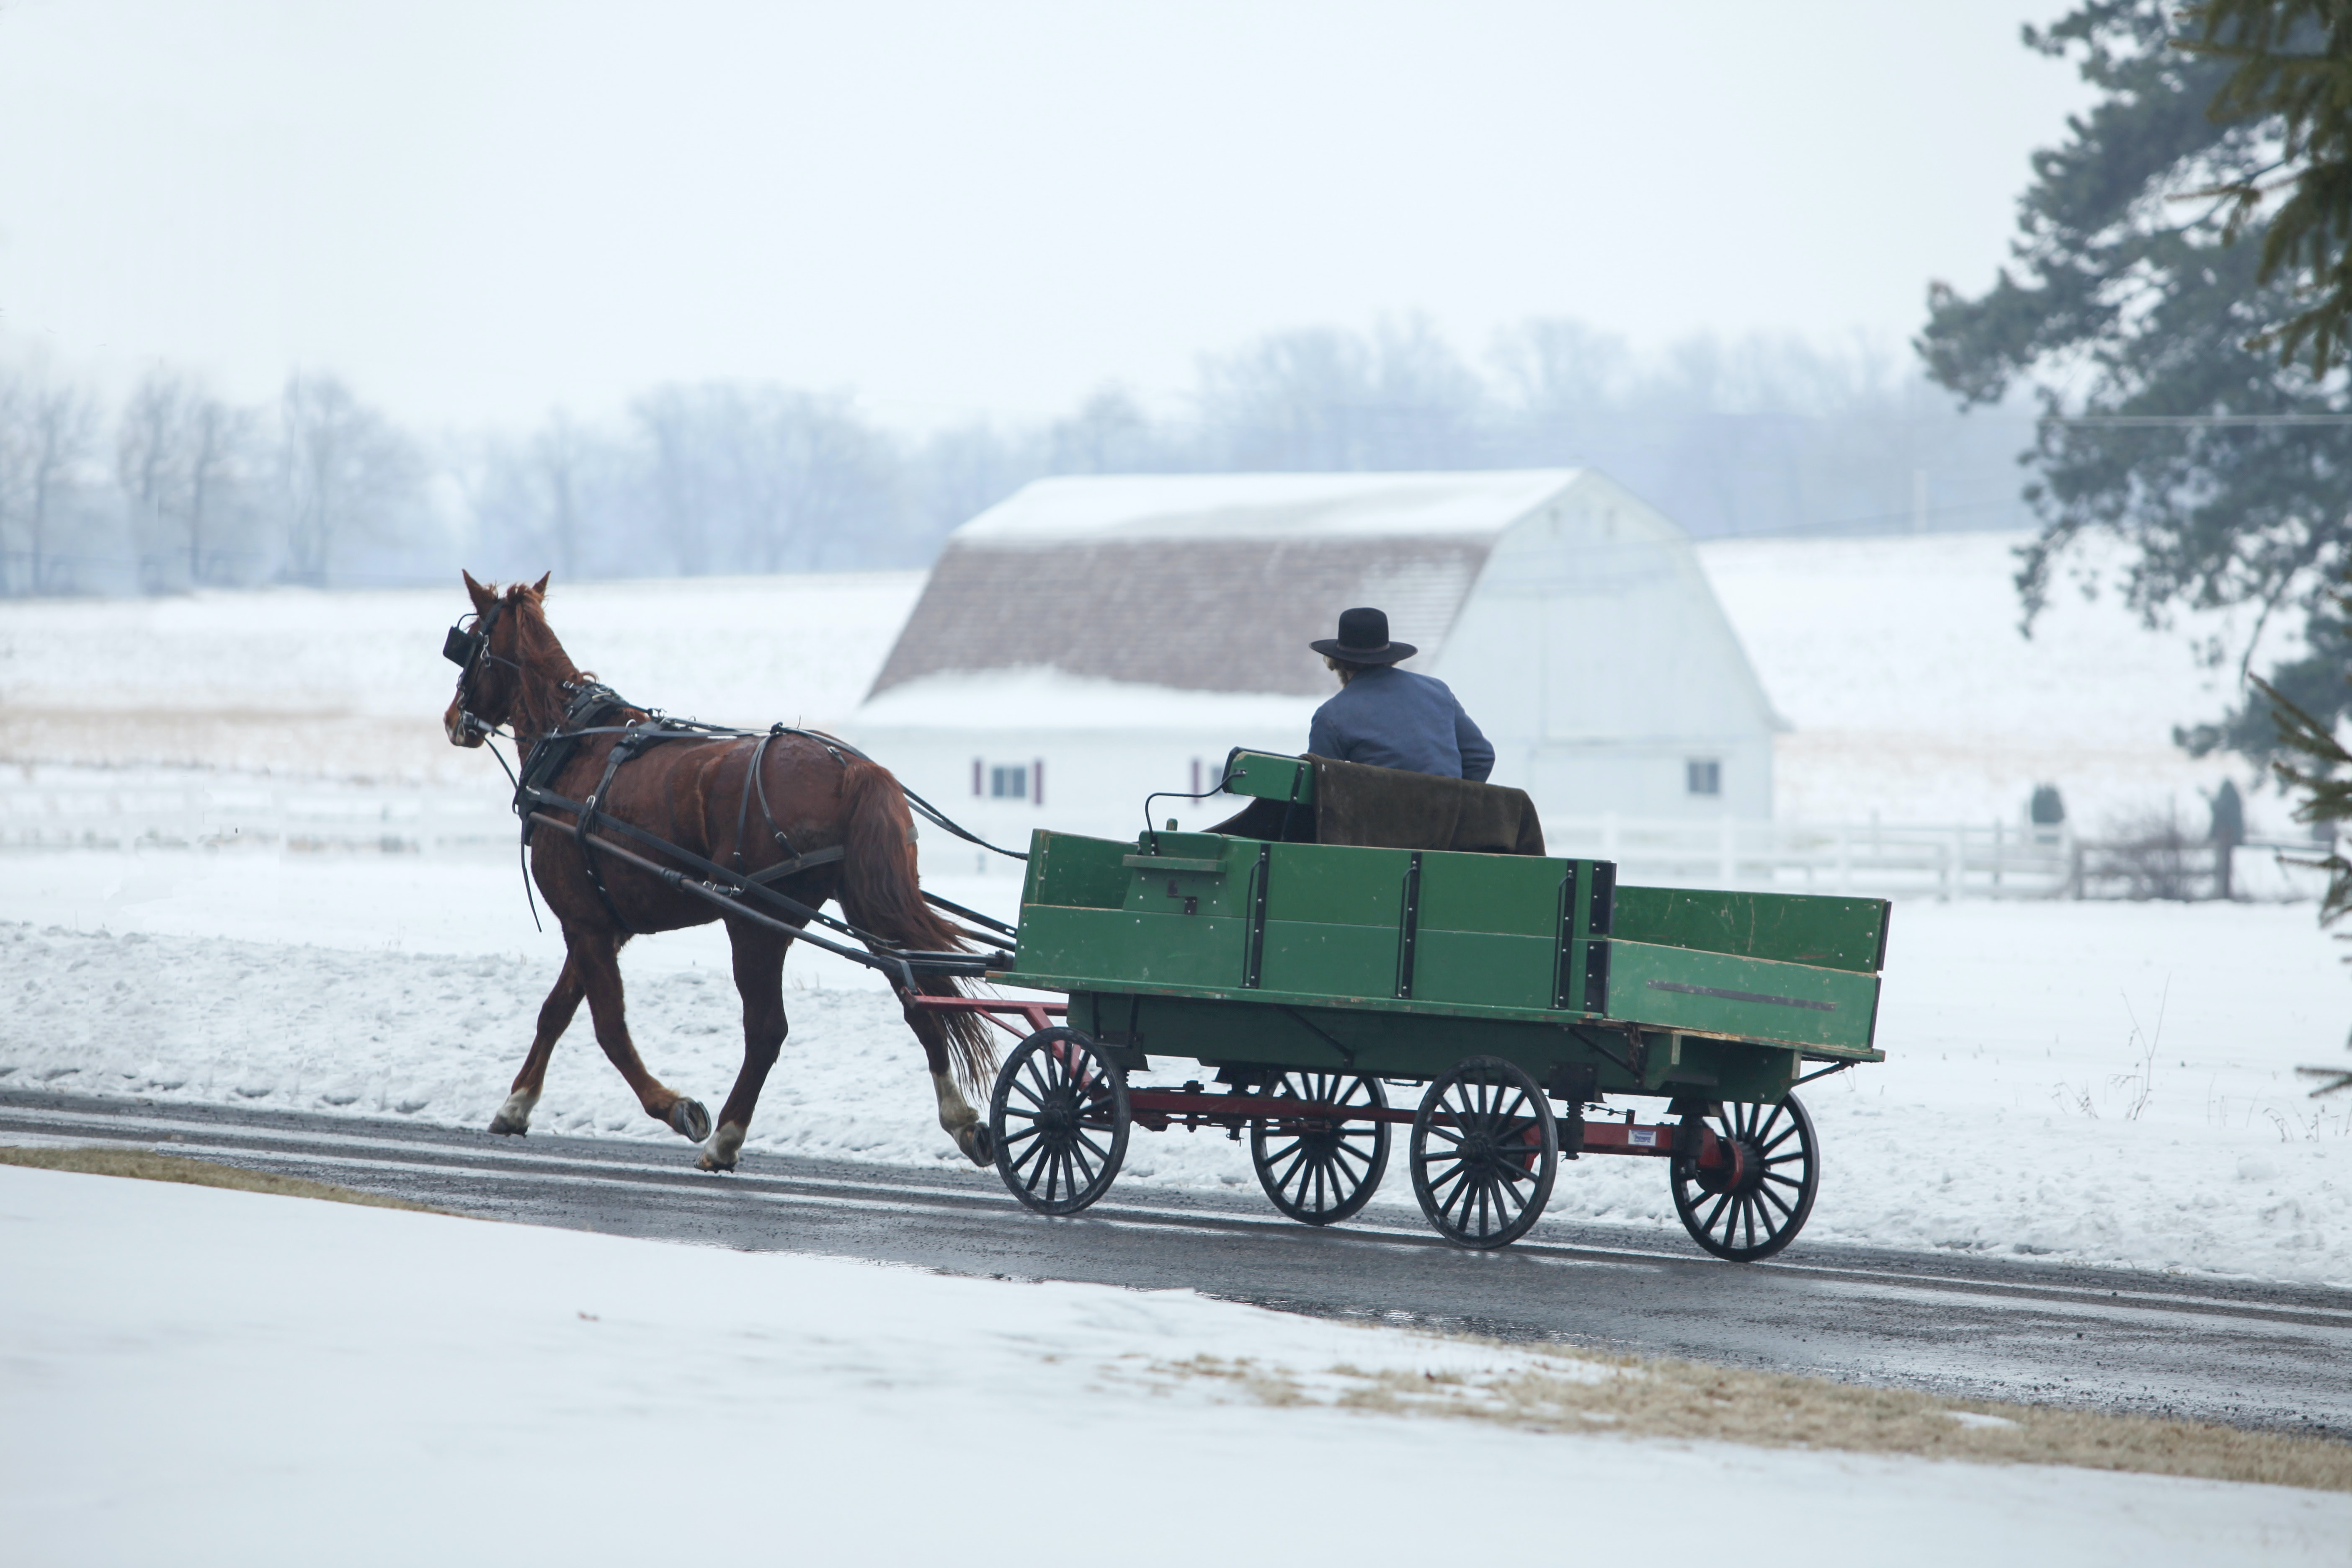 man riding horse carriage on road during snow season